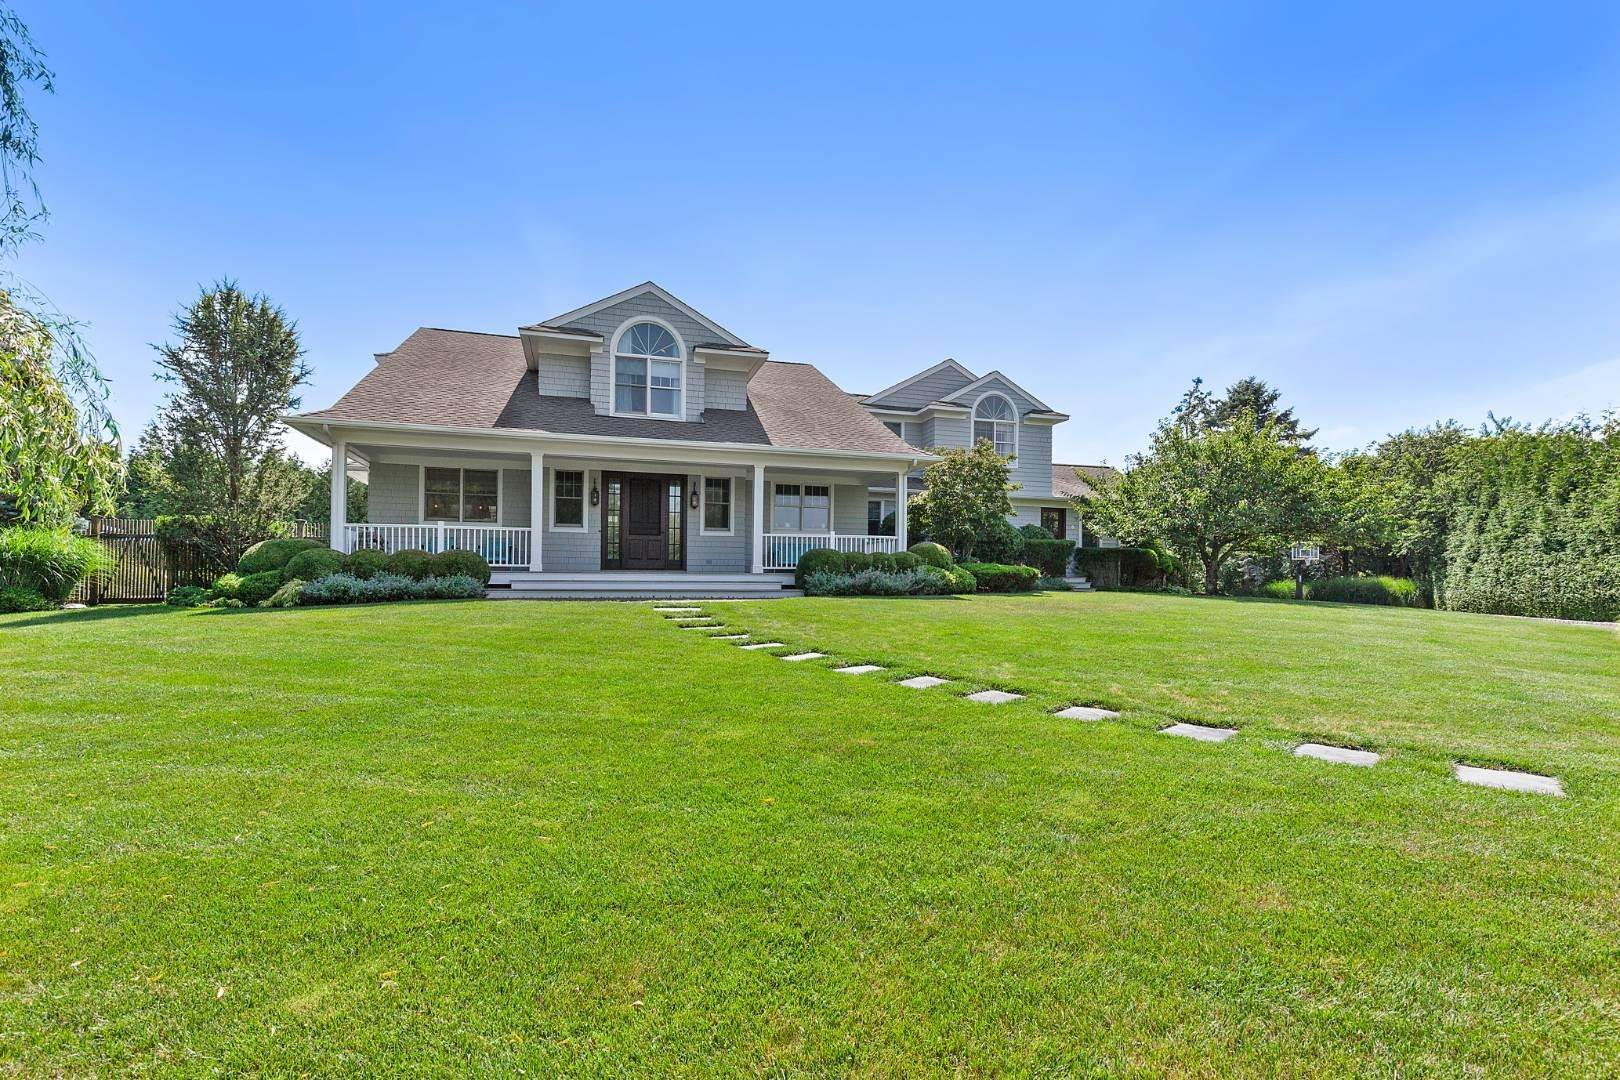 Single Family Home for Sale at Quogue Village Gem In Estate Section 3 Halsey Lane, Quogue Village, NY 11959